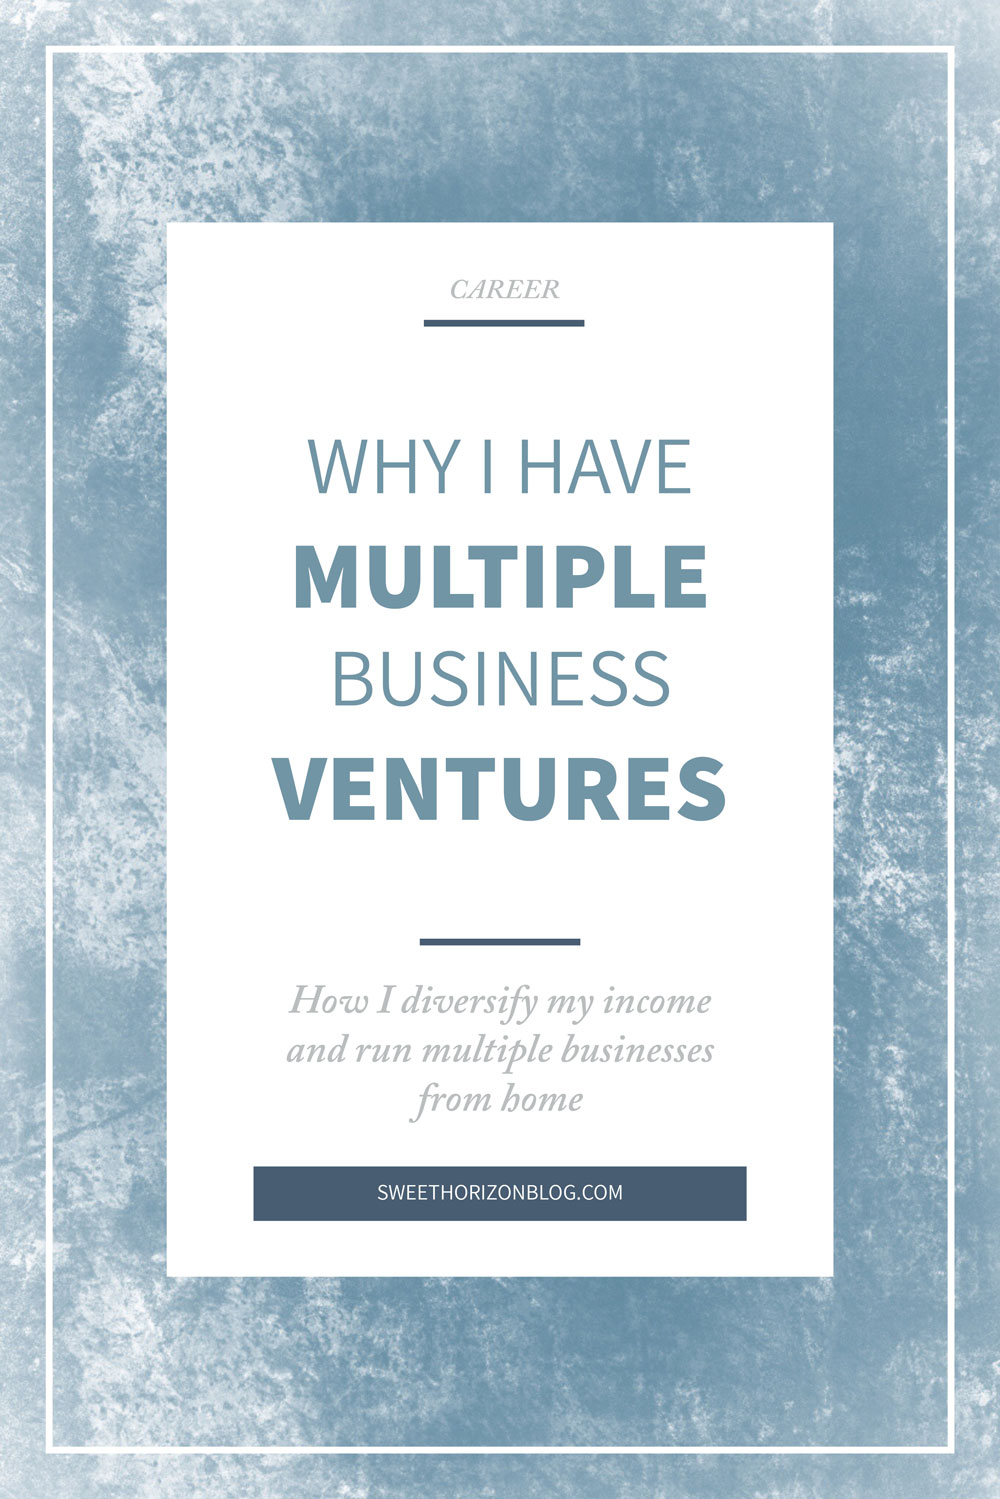 The Benefits of Having Multiple Business Ventures from www.sweethorizonblog.com